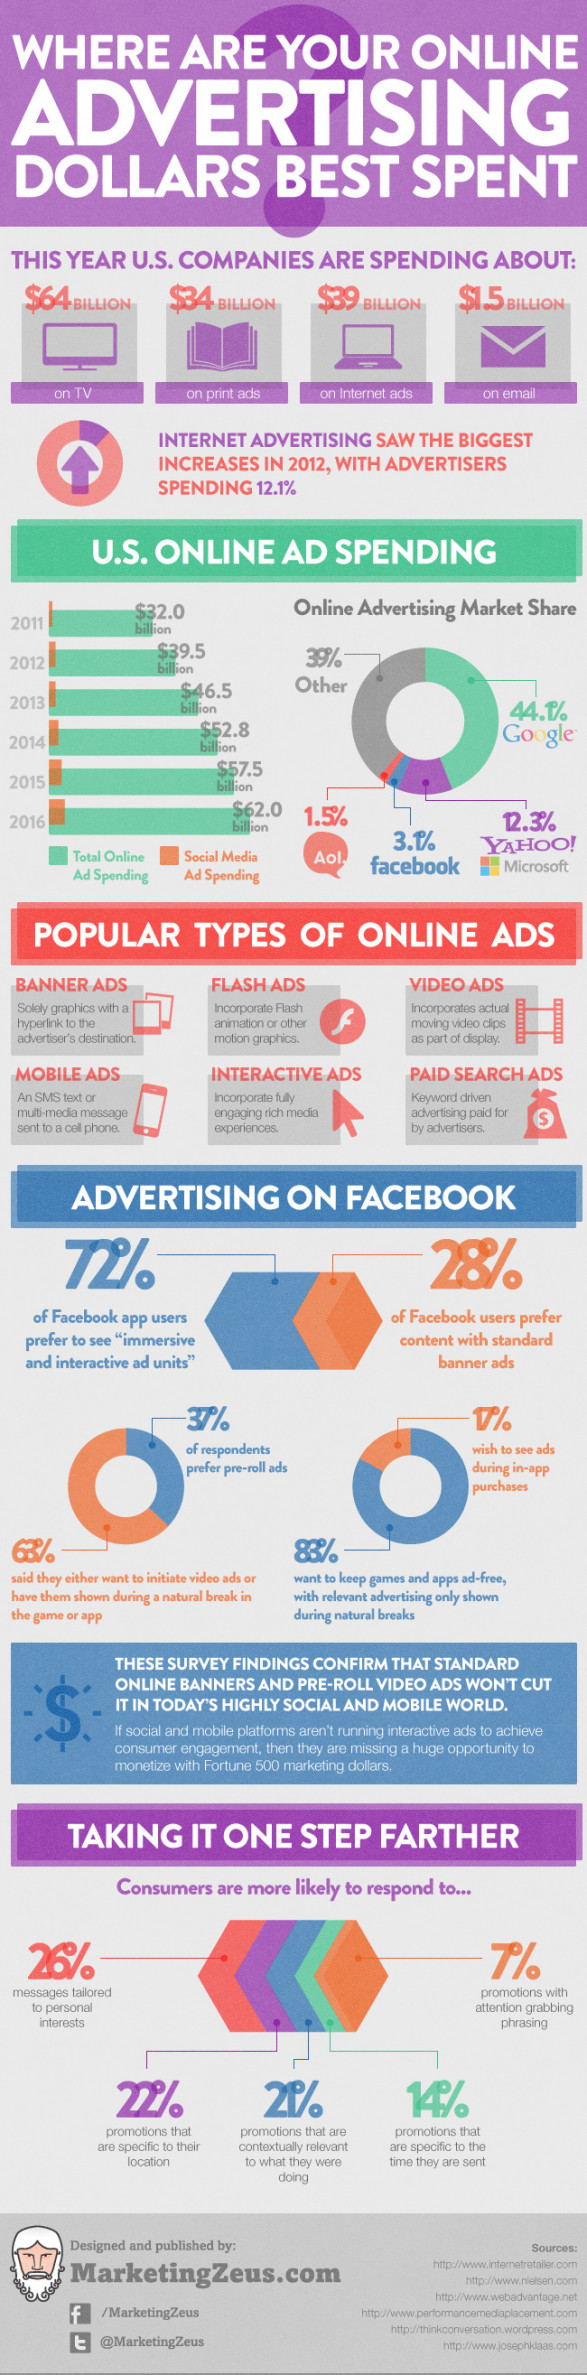 Where Are Your Online Advertising Dollars Best Spent?